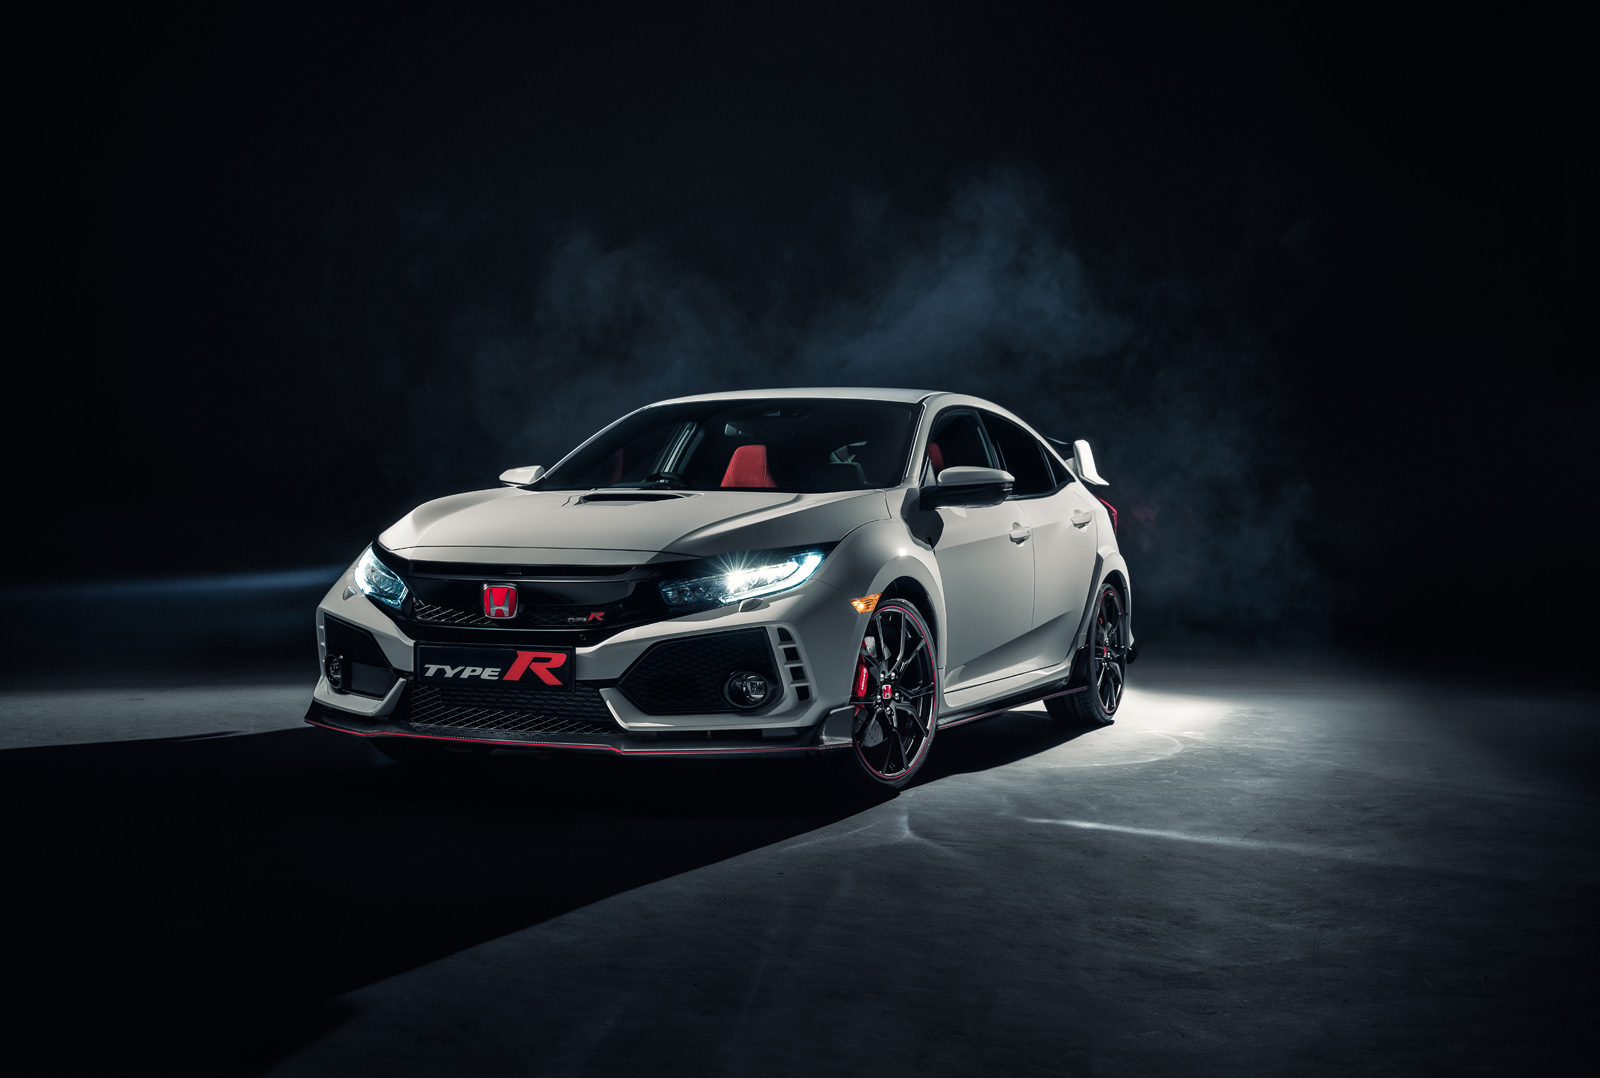 2017 honda civic type r heads to us with very reasonable price news. Black Bedroom Furniture Sets. Home Design Ideas